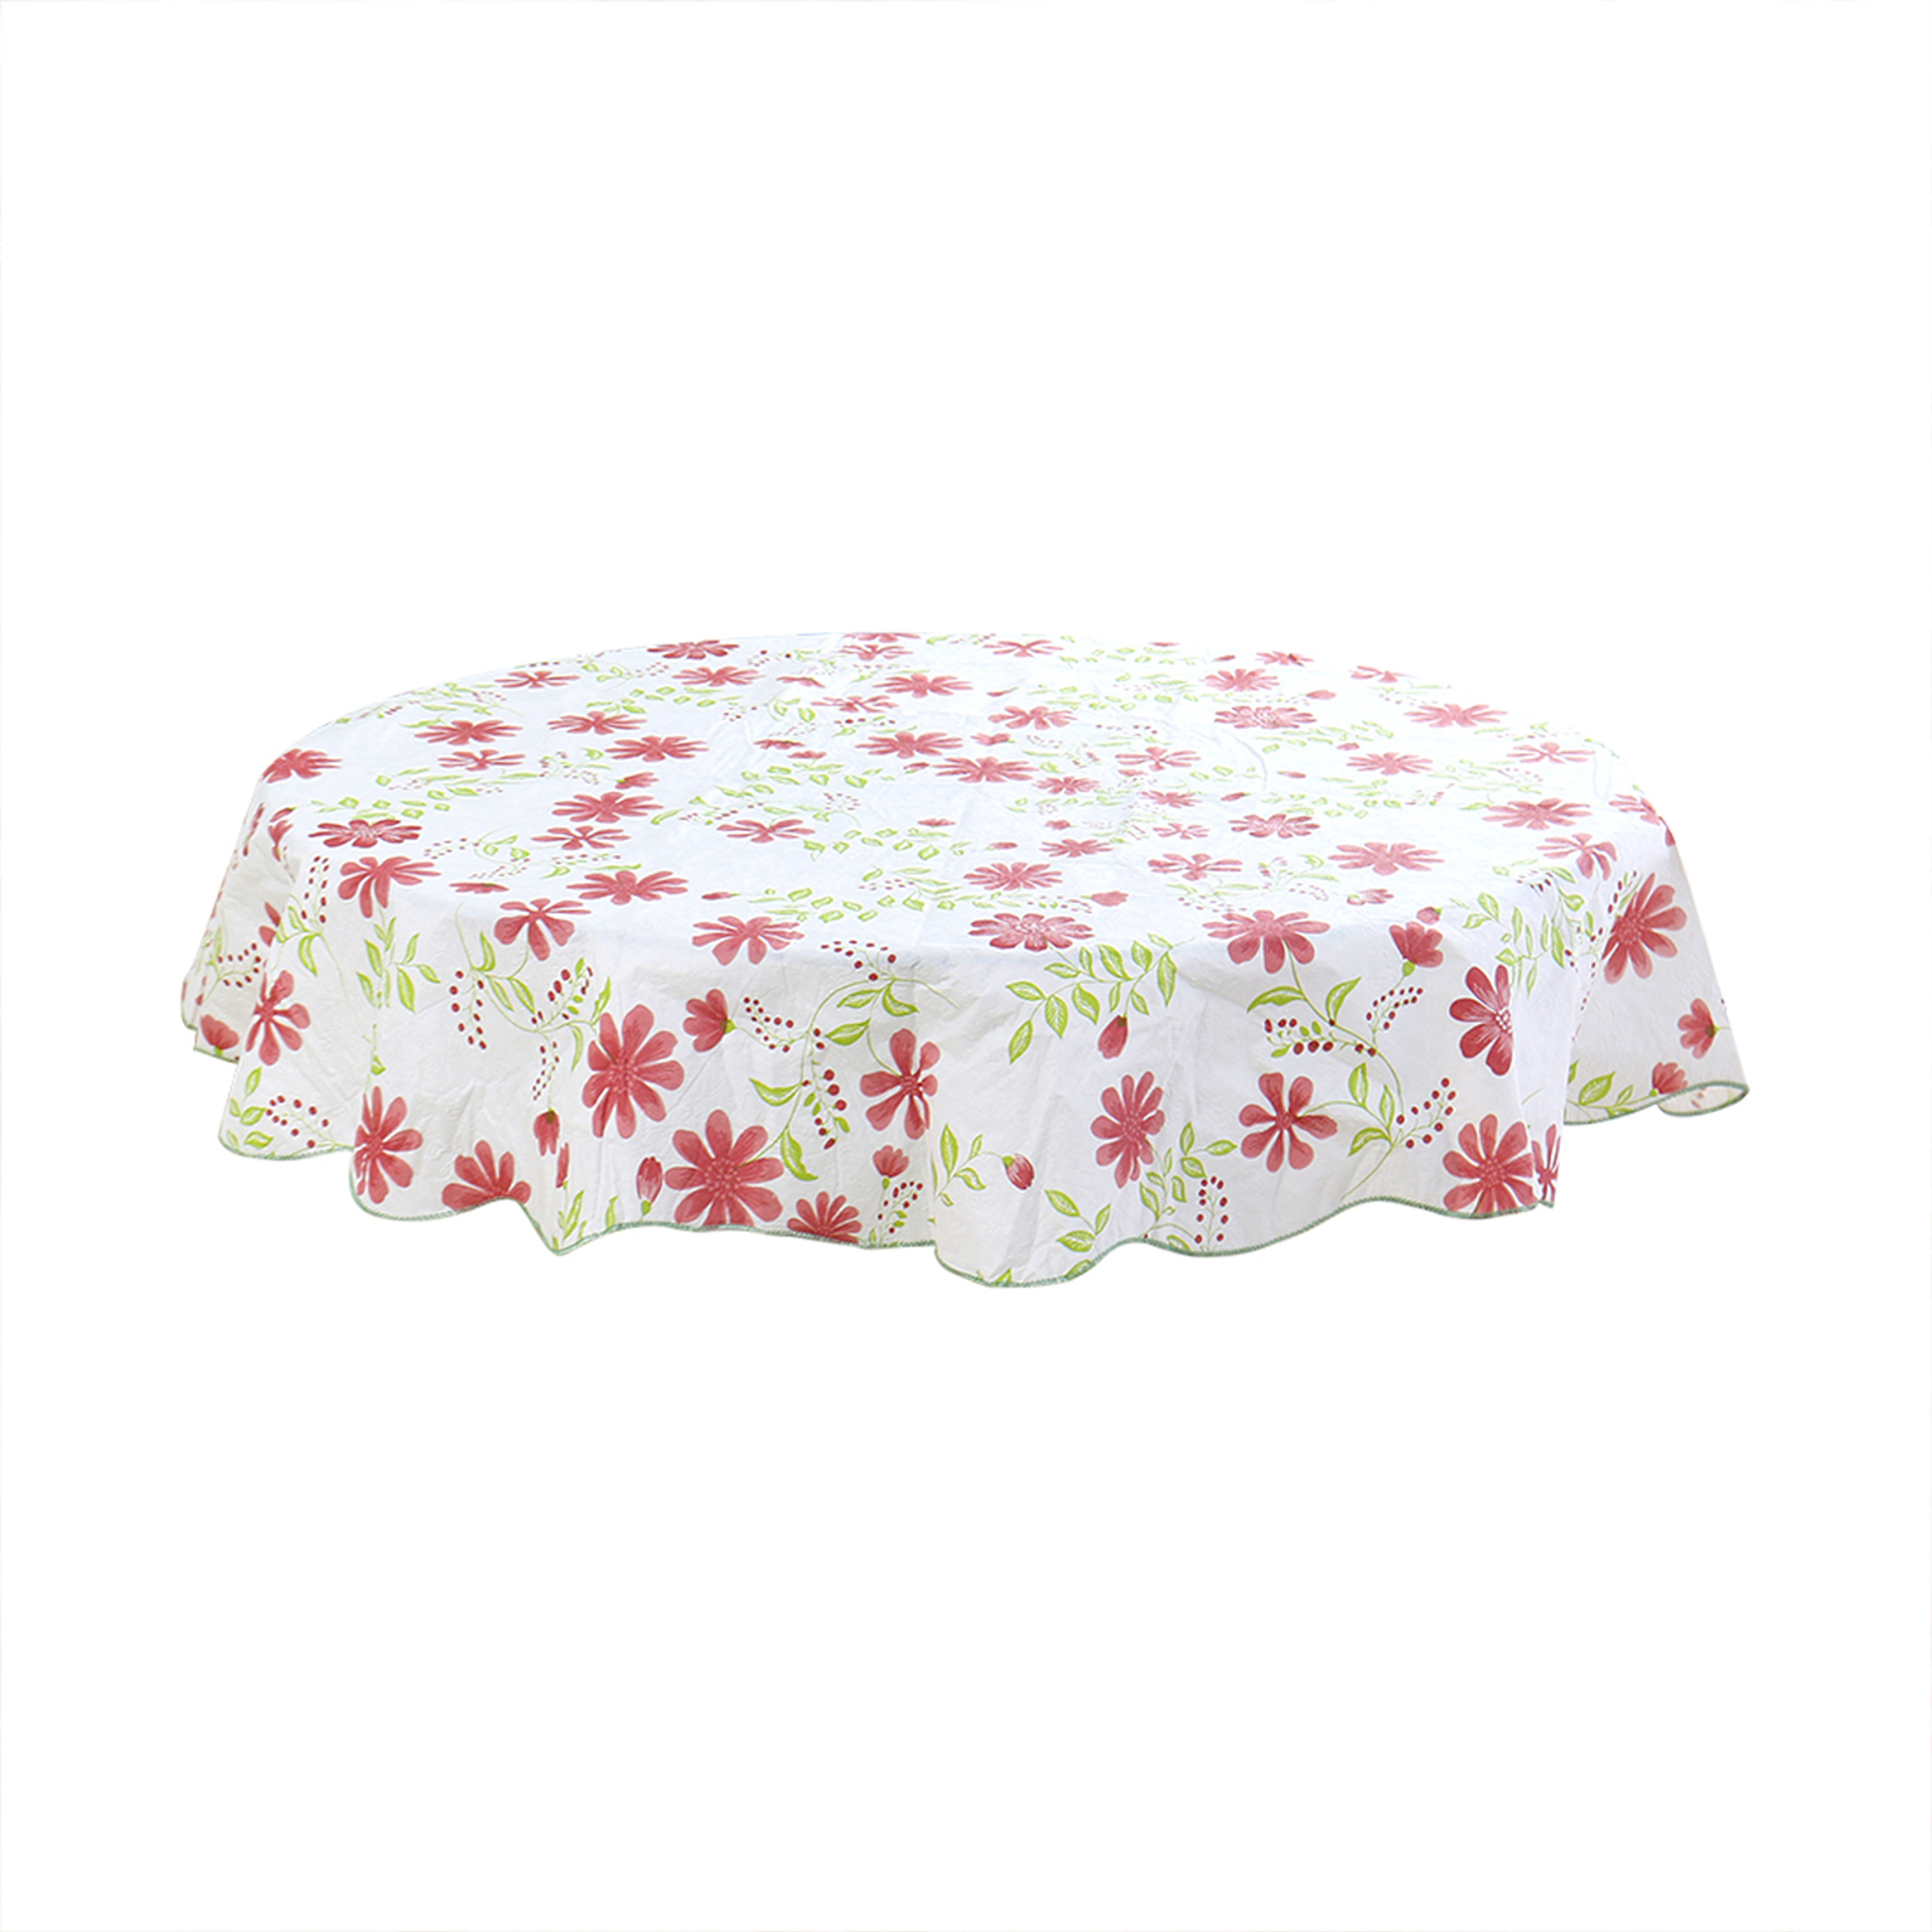 Home Picnic Round Nine-petals Flower Pattern Water Resistant Oil-proof Tablecloth Table Cloth Cover Red 60 Inch